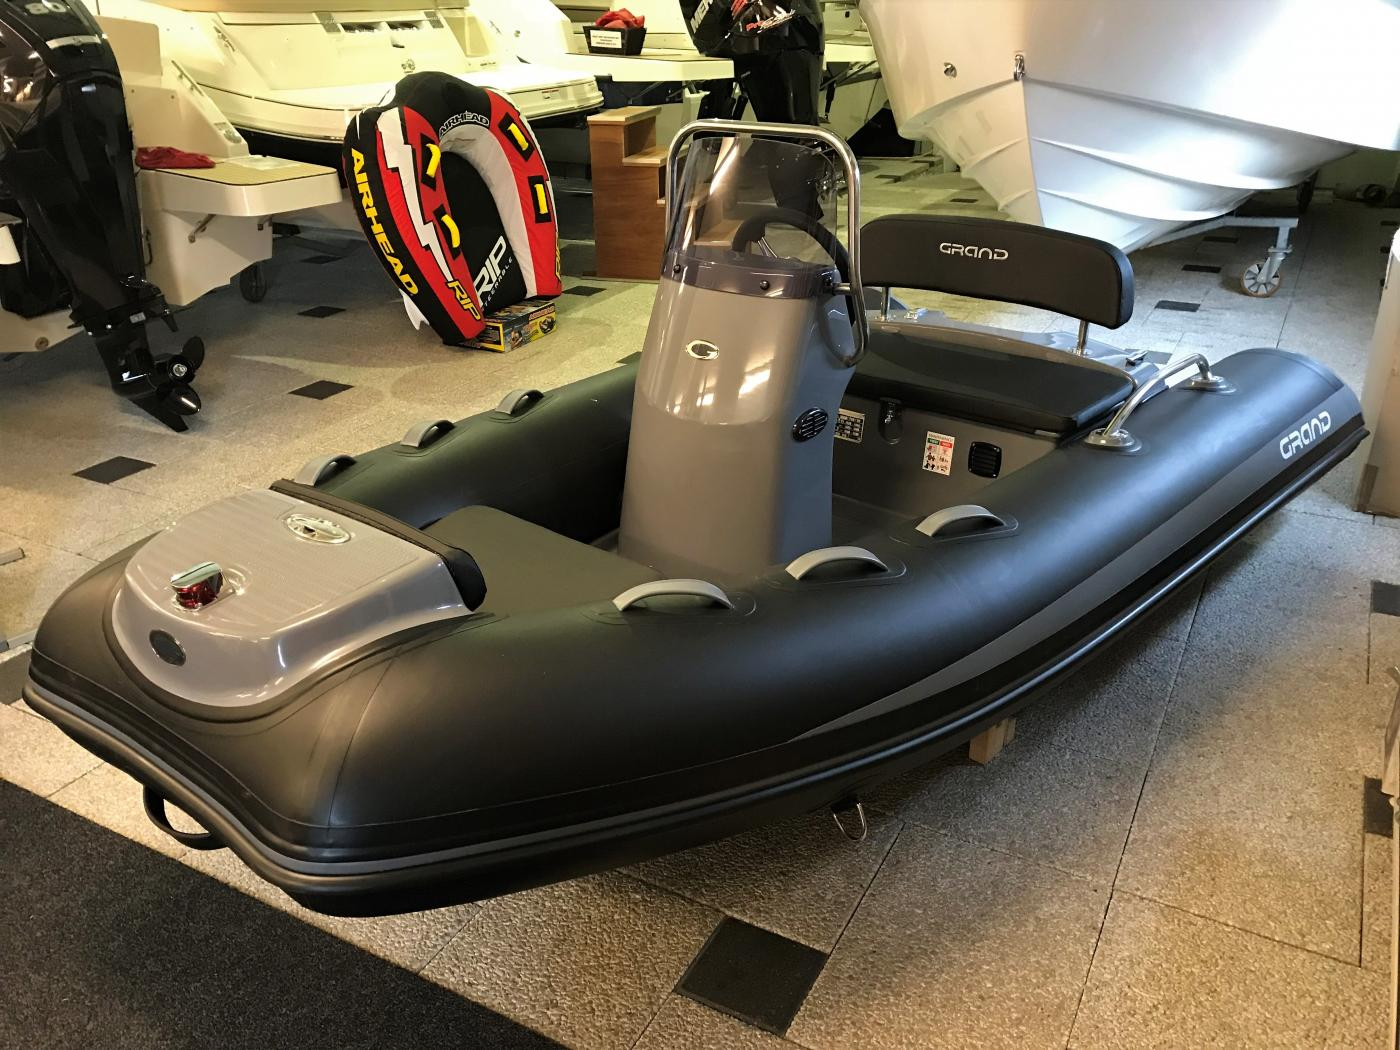 Te koop Grand  G340 Rubberboten | Bomert Watersport